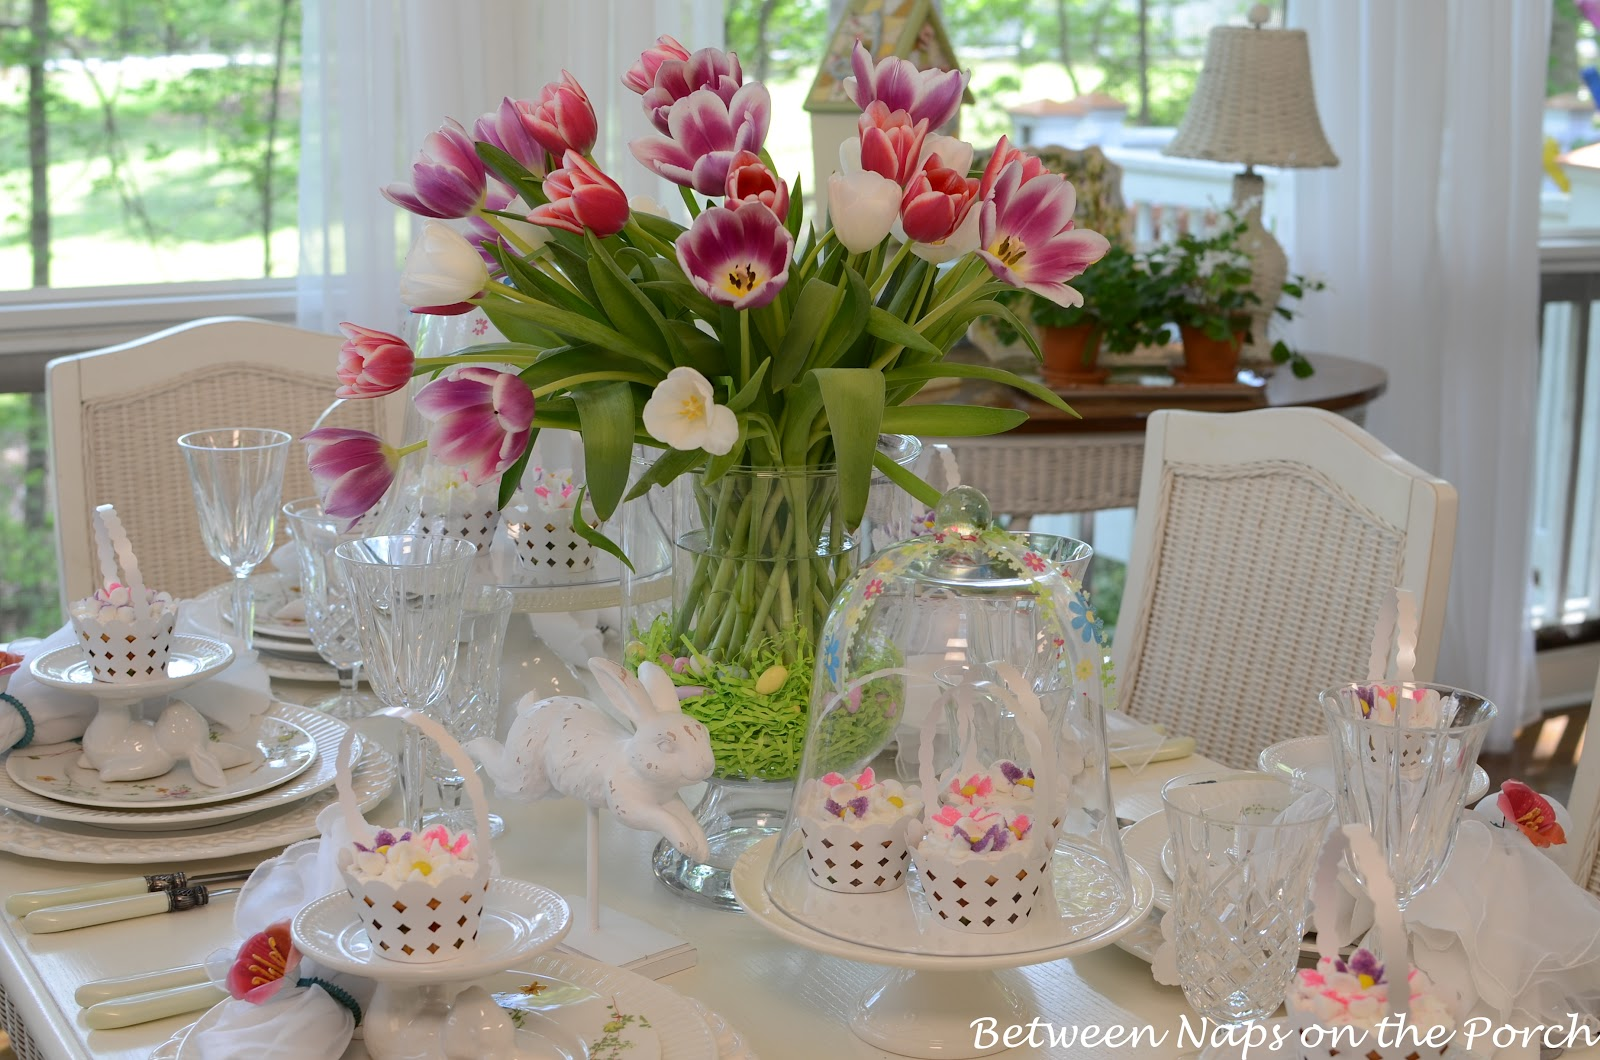 Easter Table Setting with Tulip Centerpiece and Pottery Barn Bunny Cupcake Stands & Easter Table Spring Setting with Tulip Centerpiece and Pottery Barn ...